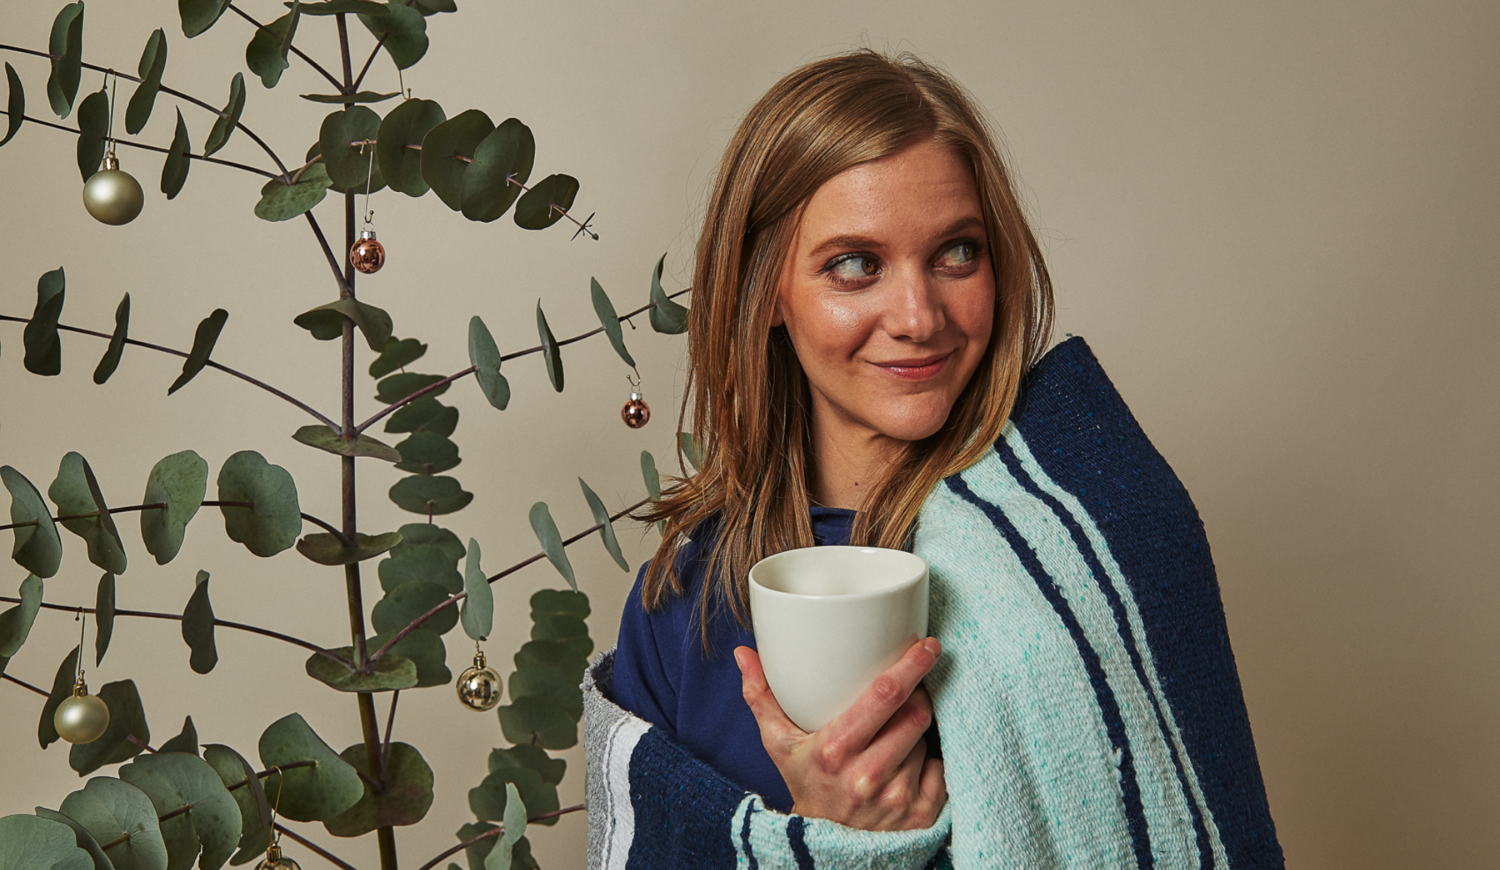 cozy with a mug and blanket